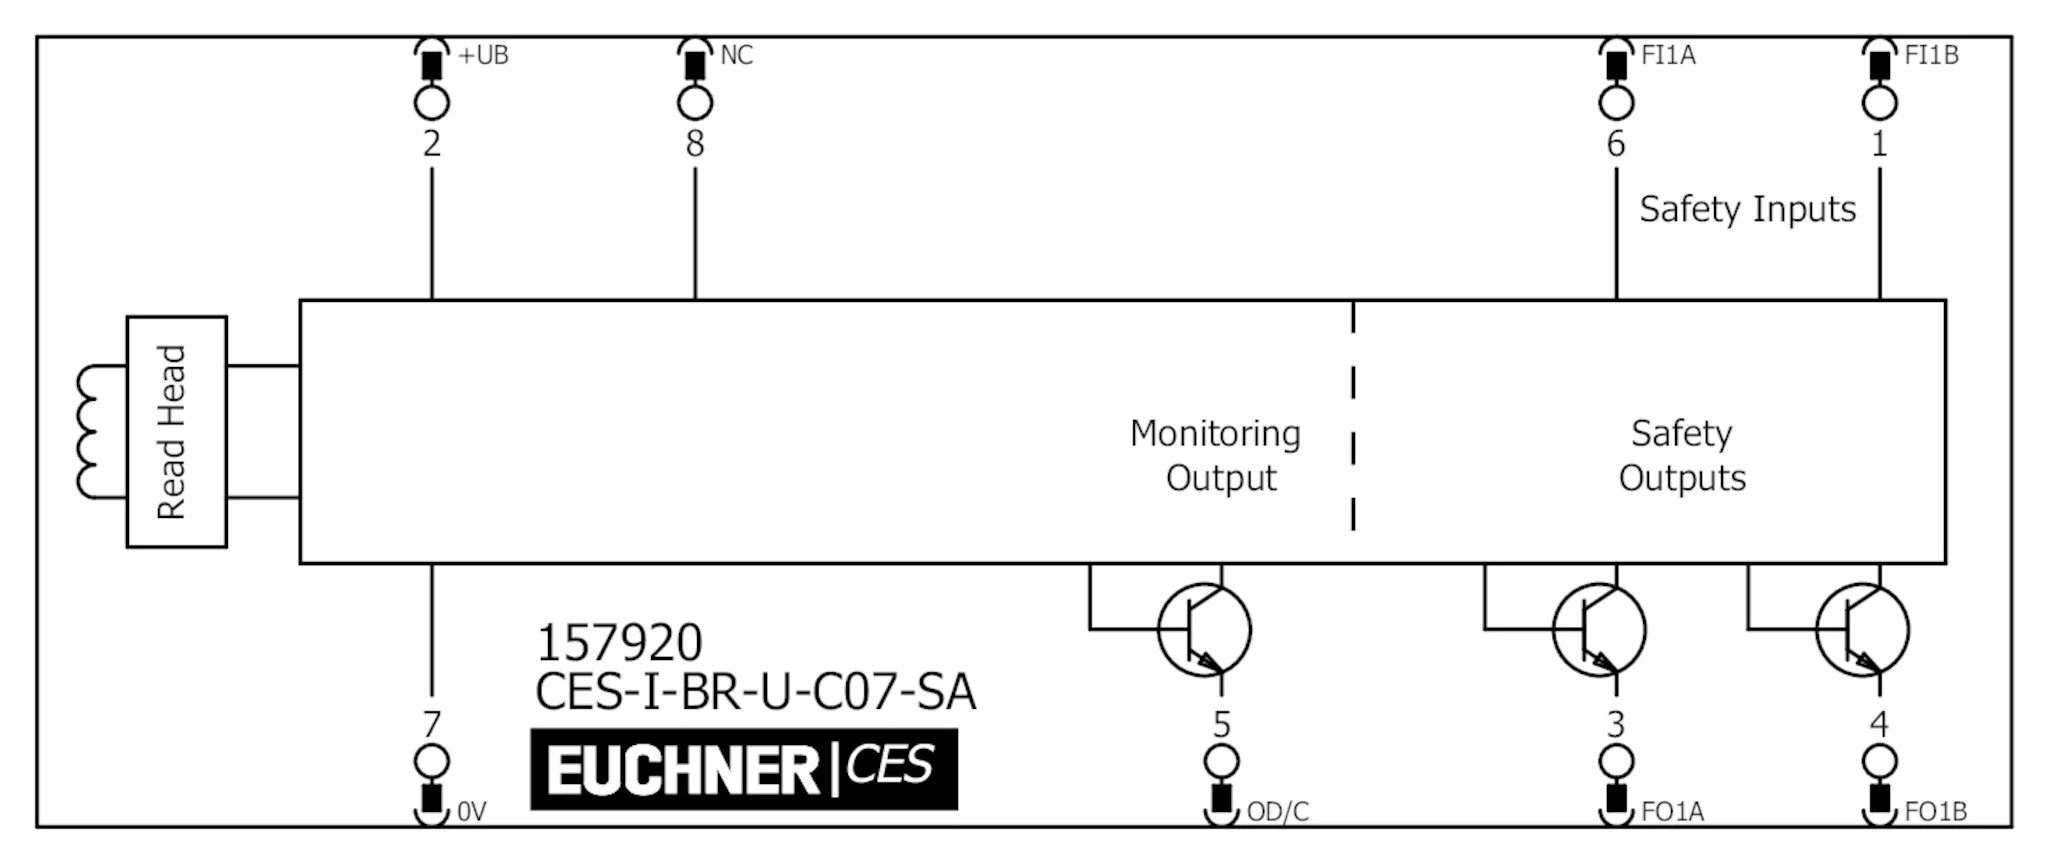 Ces I Br U C07 Sa Non Contact Safety Switches Ces I